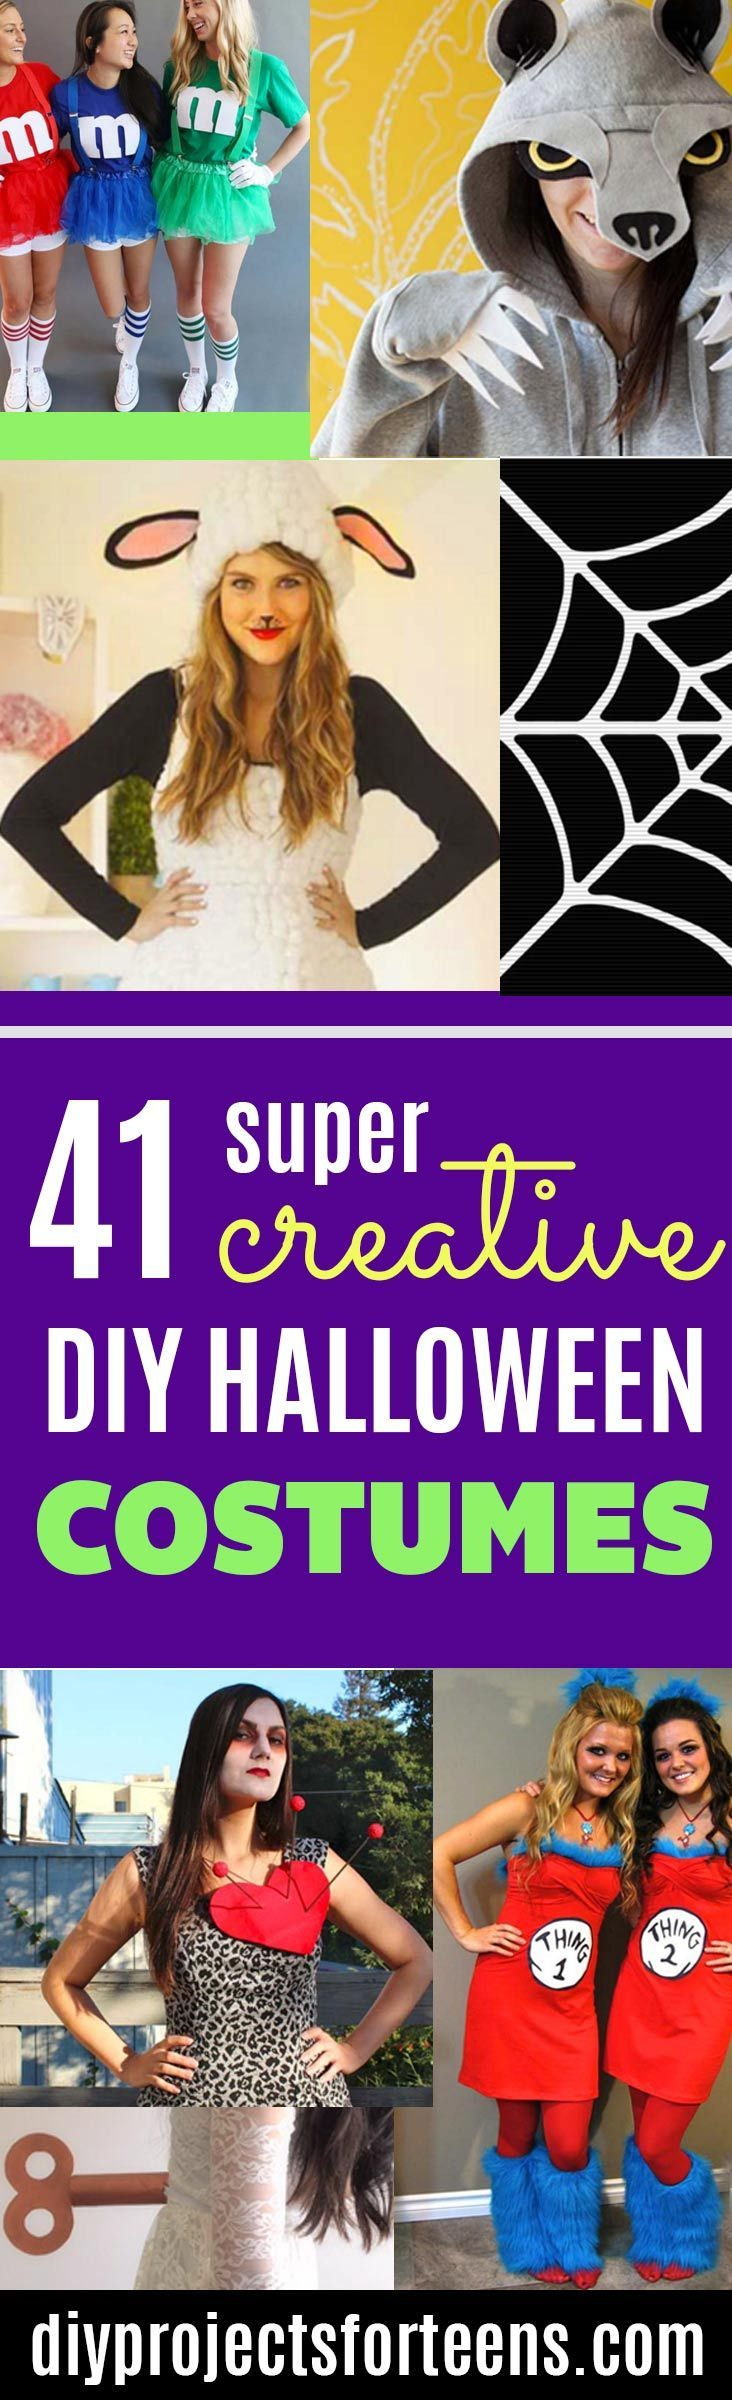 Best Last Minute DIY Halloween Costume Ideas - Do It Yourself Costumes for Teens, Teenagers, Tweens, Teenage Boys and Girls, Friends. Fun, Clever, Cheap and Creative Costumes that Are Easy To Make. Step by Step Tutorials and Instructions http://diyprojectsforteens.com/last-minute-diy-halloween-costumes